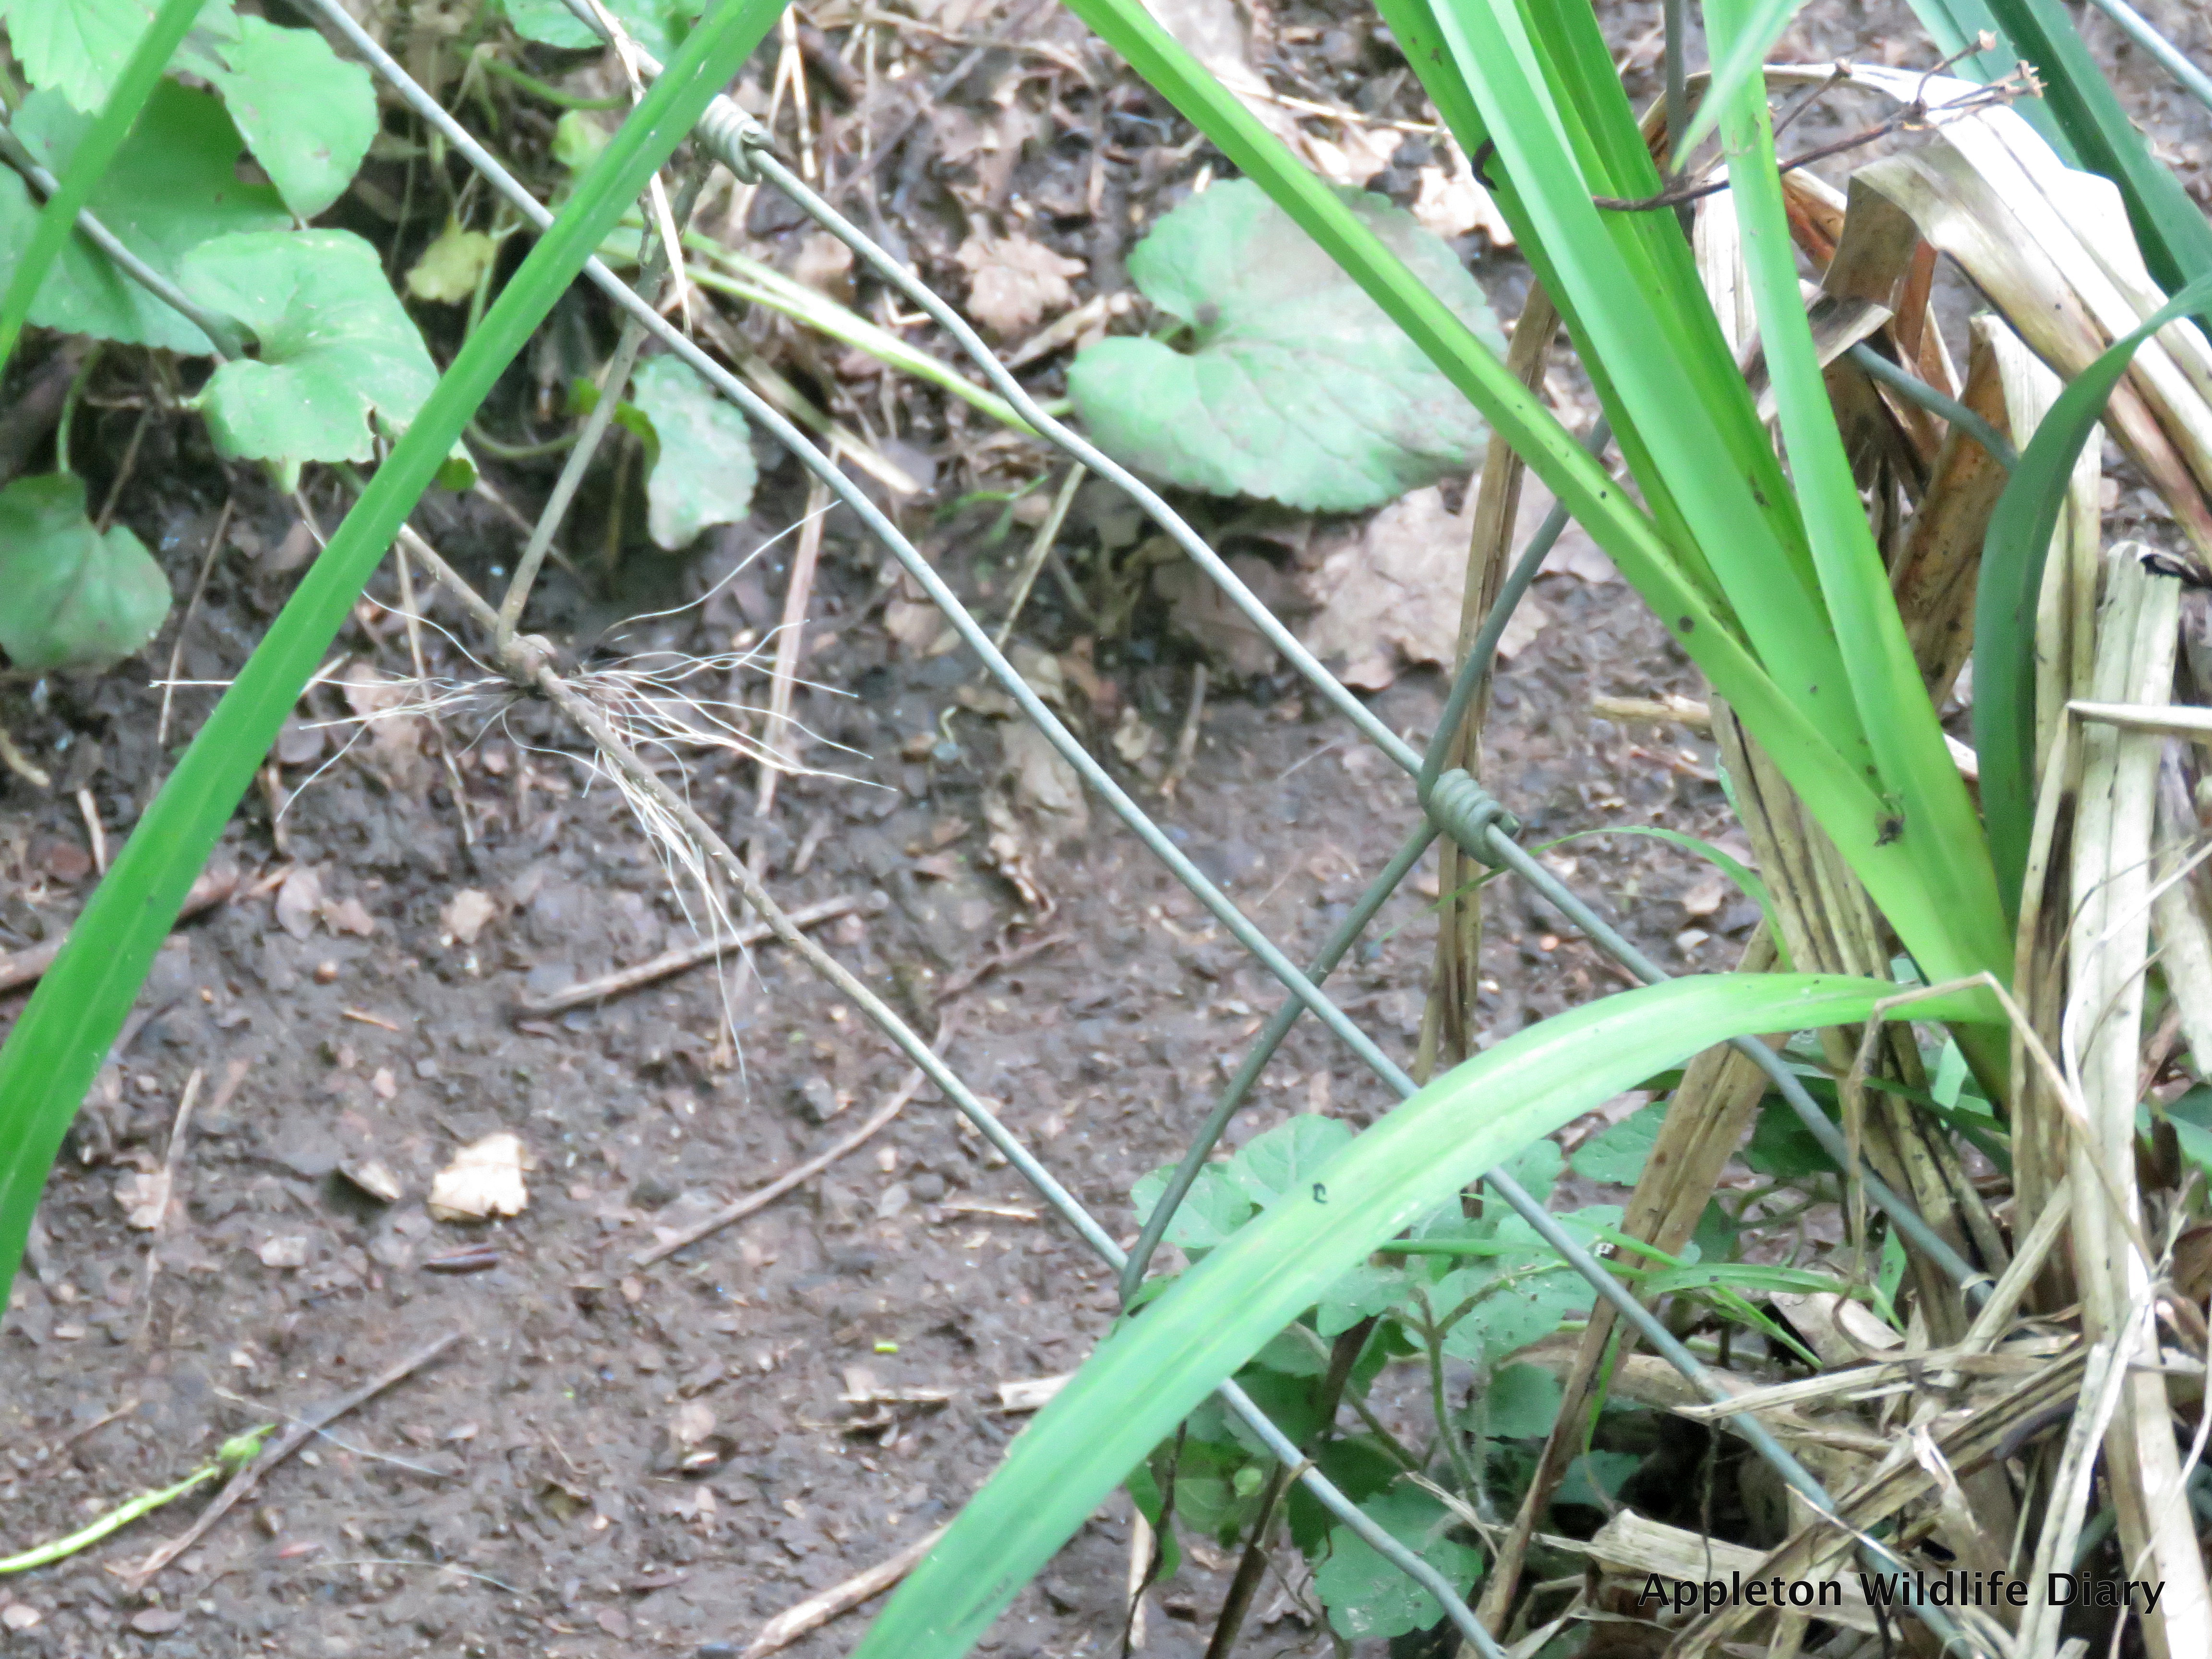 Badger hair caught on wire | Appleton Wildlife Diary by Alex White